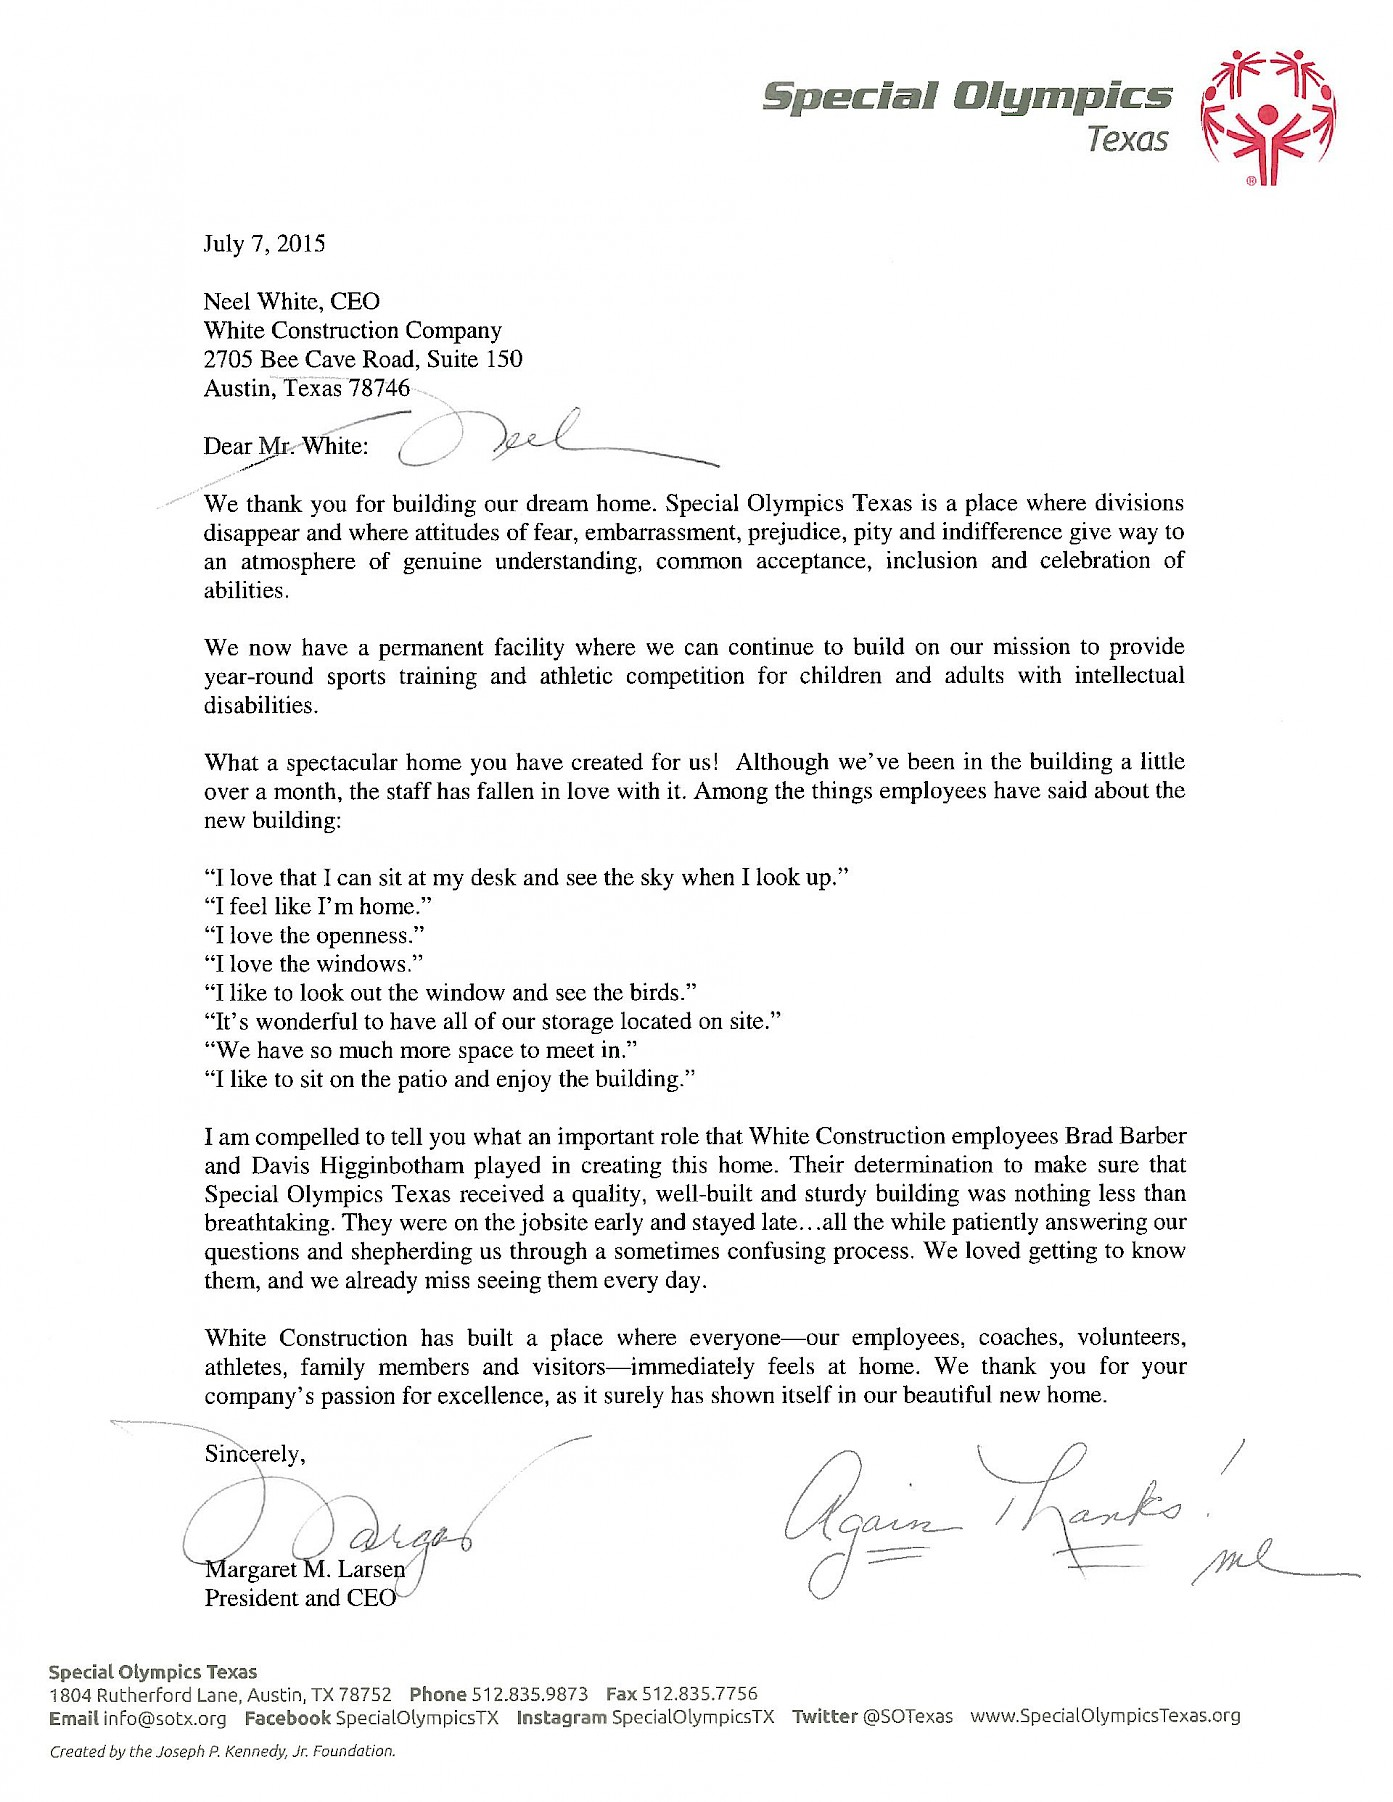 Appreciation Letter From Special Olympics Texas  Appreciation Letter